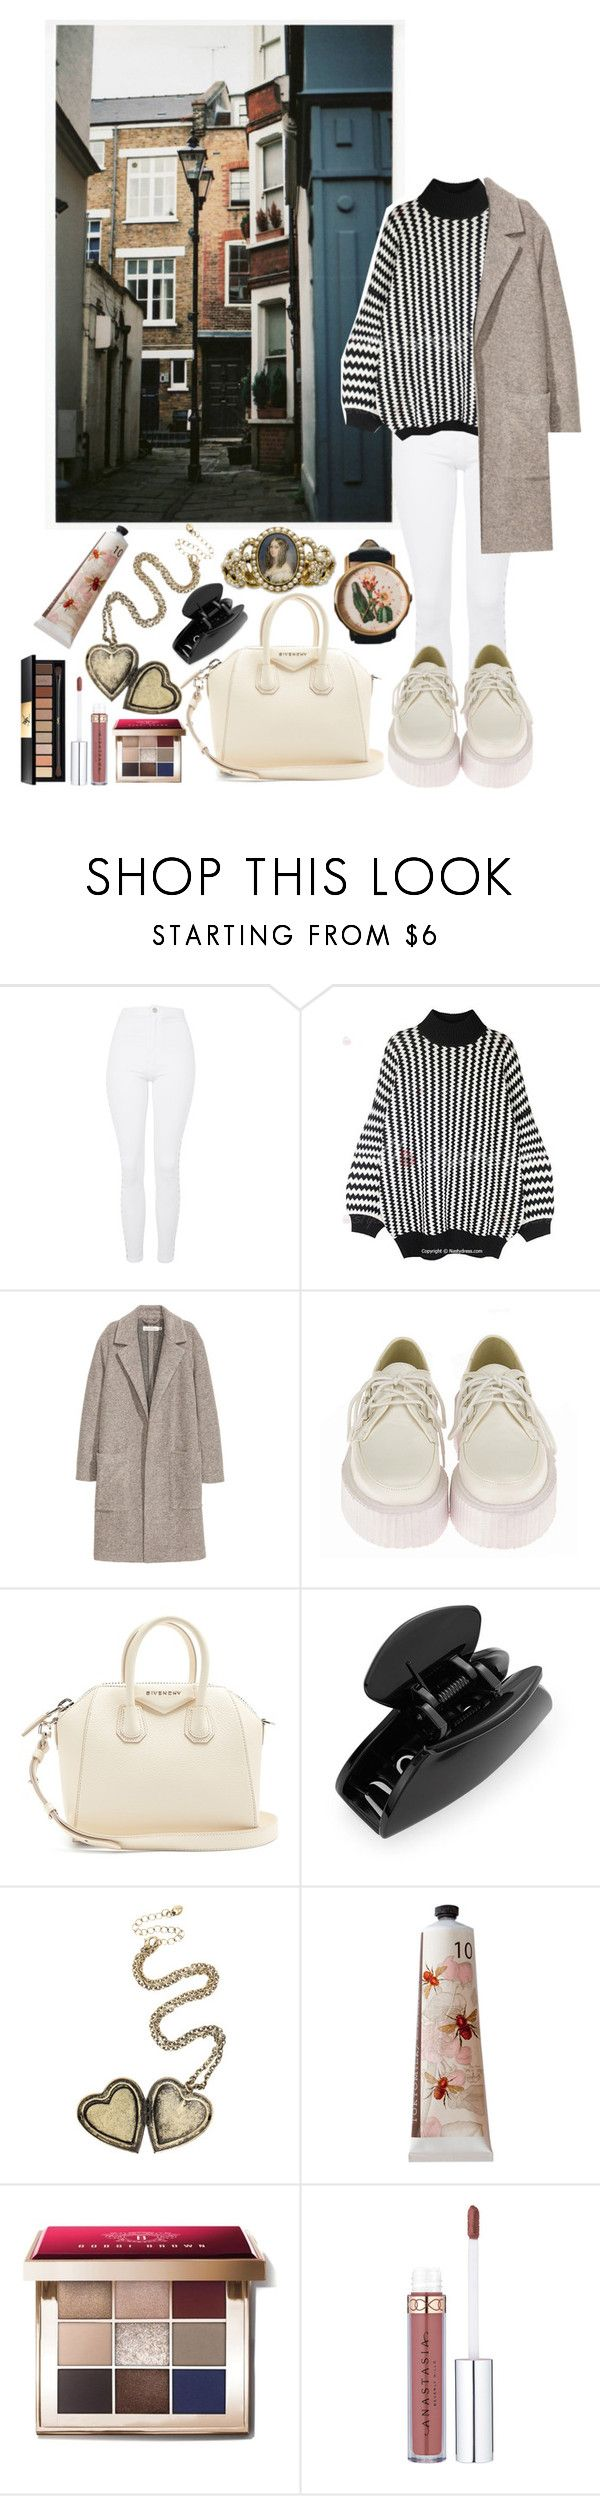 Untitled #441 by danielagreg on Polyvore featuring H&M, Topshop, Retrò, Givenchy, Hot Topic, Cara, Yves Saint Laurent, Bobbi Brown Cosmetics and TokyoMilk